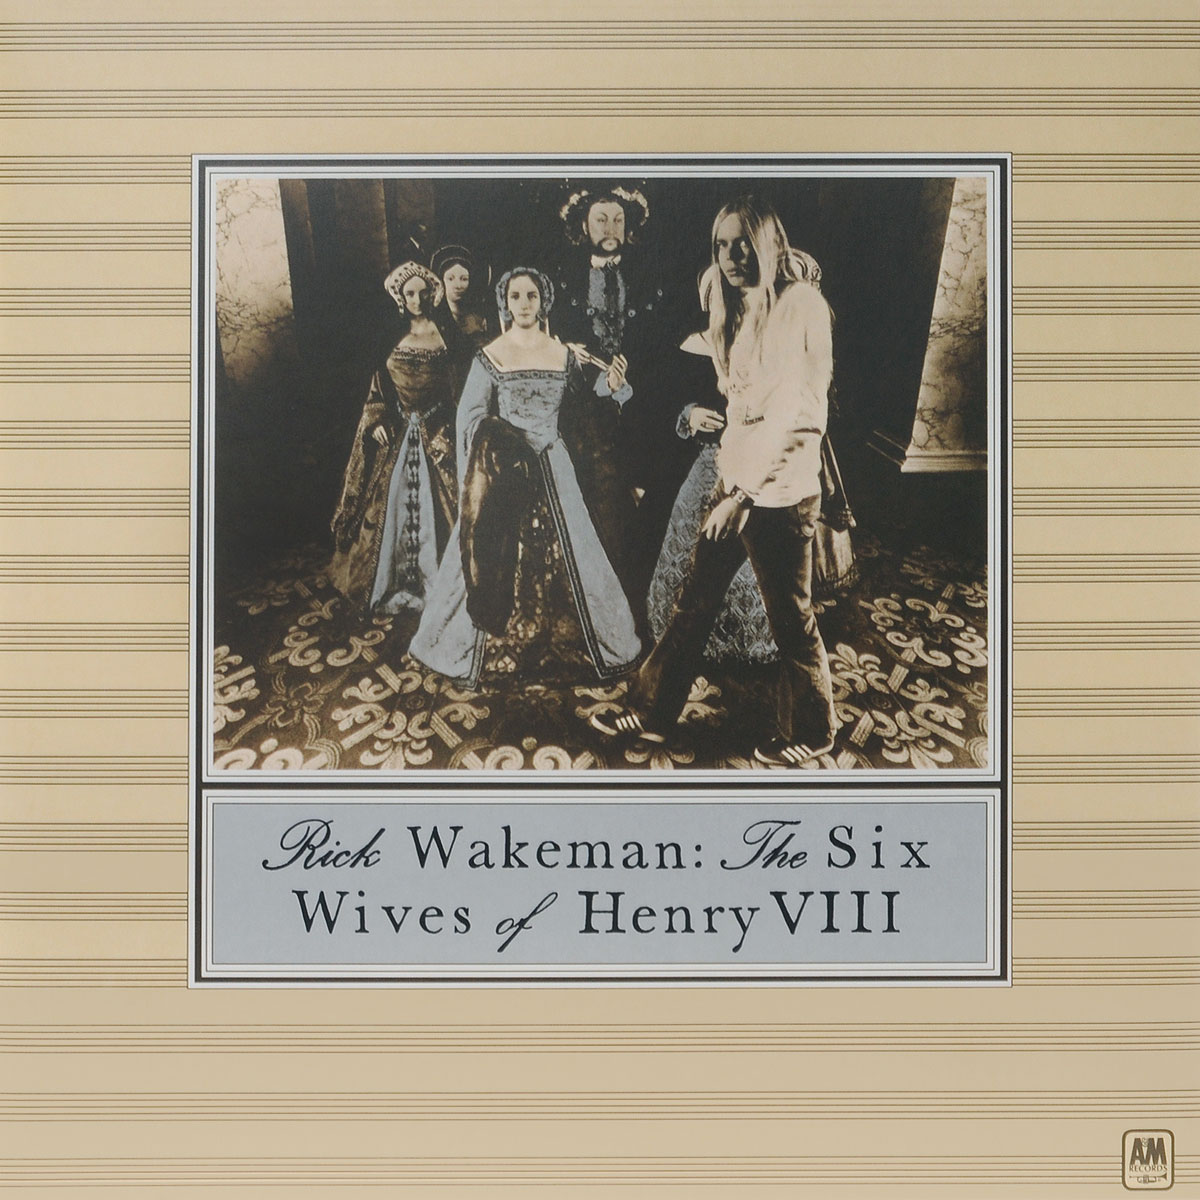 Рик Уэйкман Rick Wakeman. The Six Wives Of Henry VIII (LP) купить